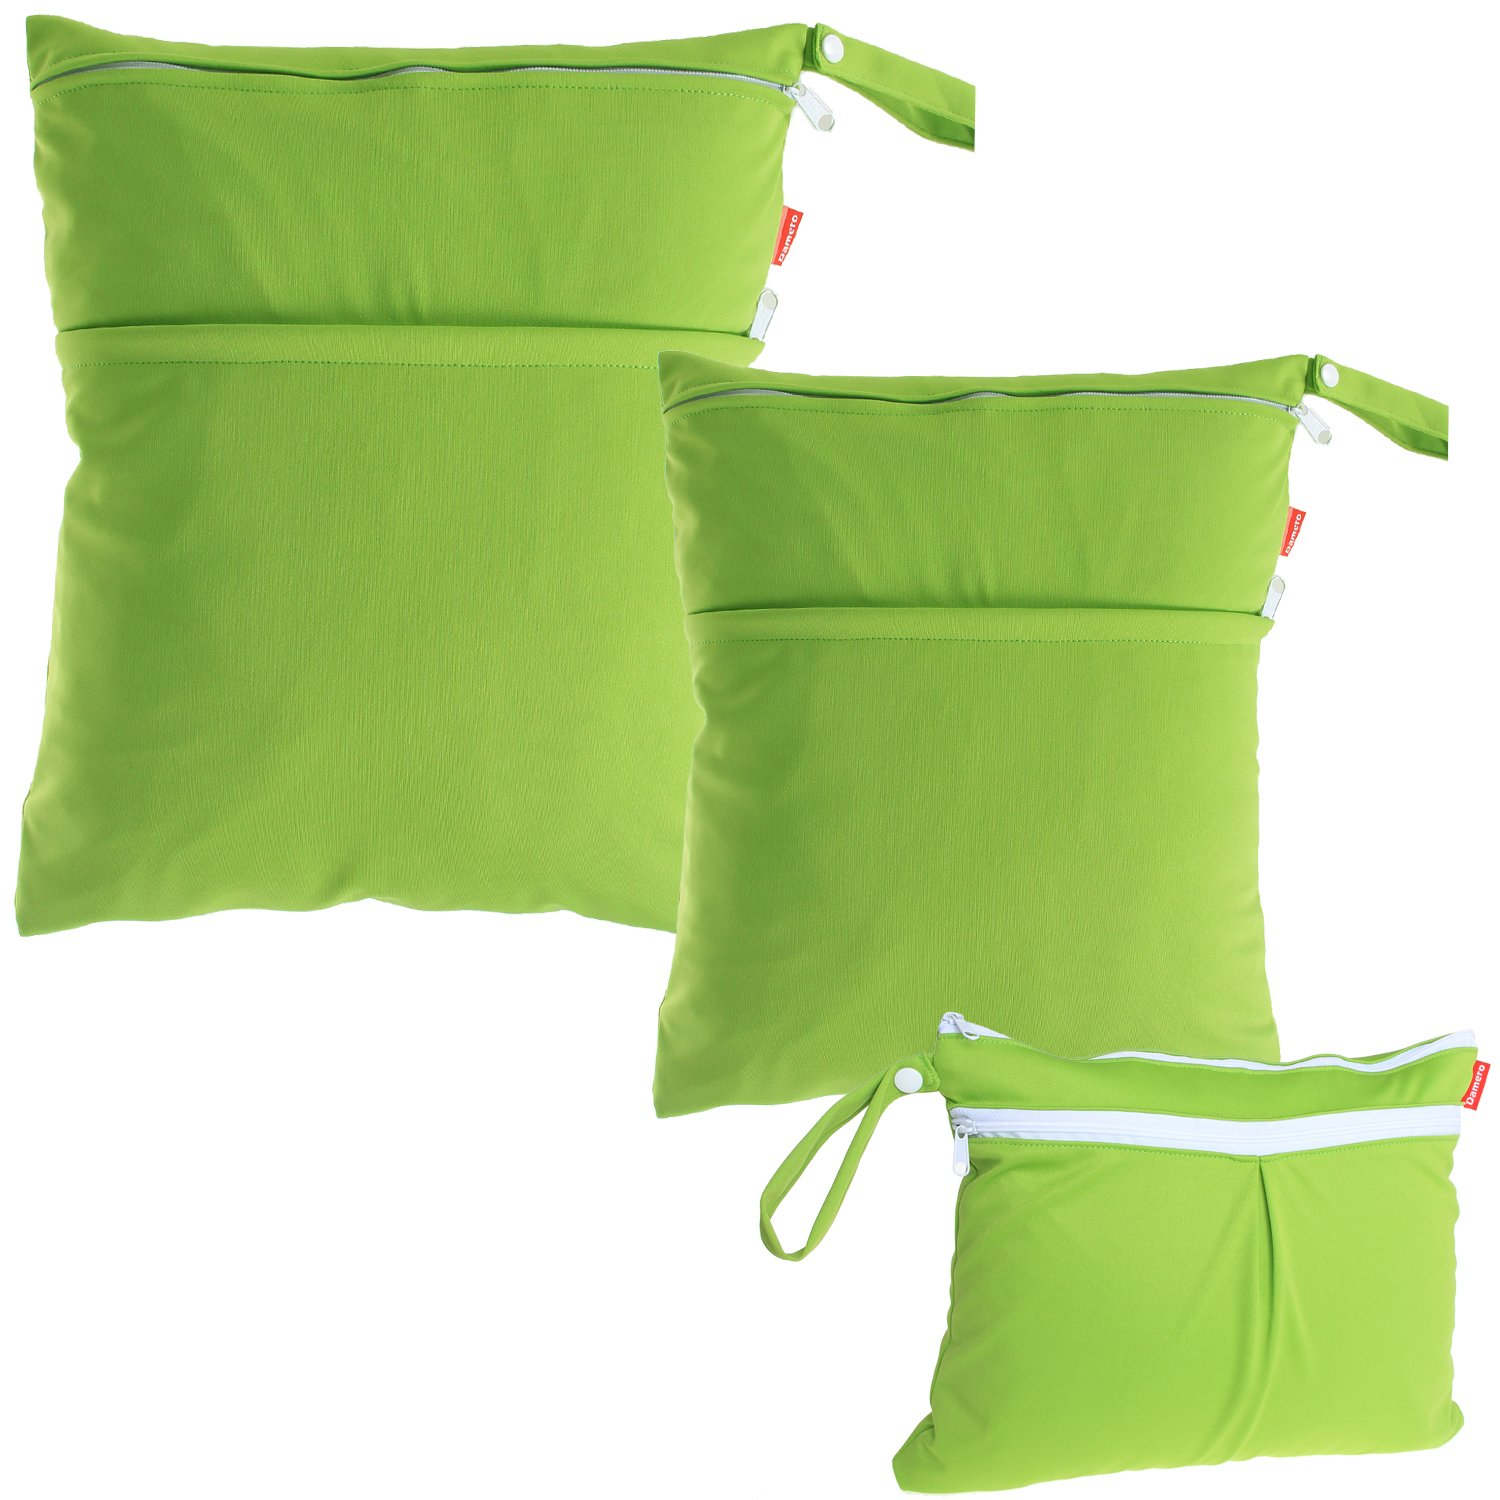 Damero 3pcs Pack Wet Dry Bag for Cloth Diapers Daycare Organizer Bag, Green